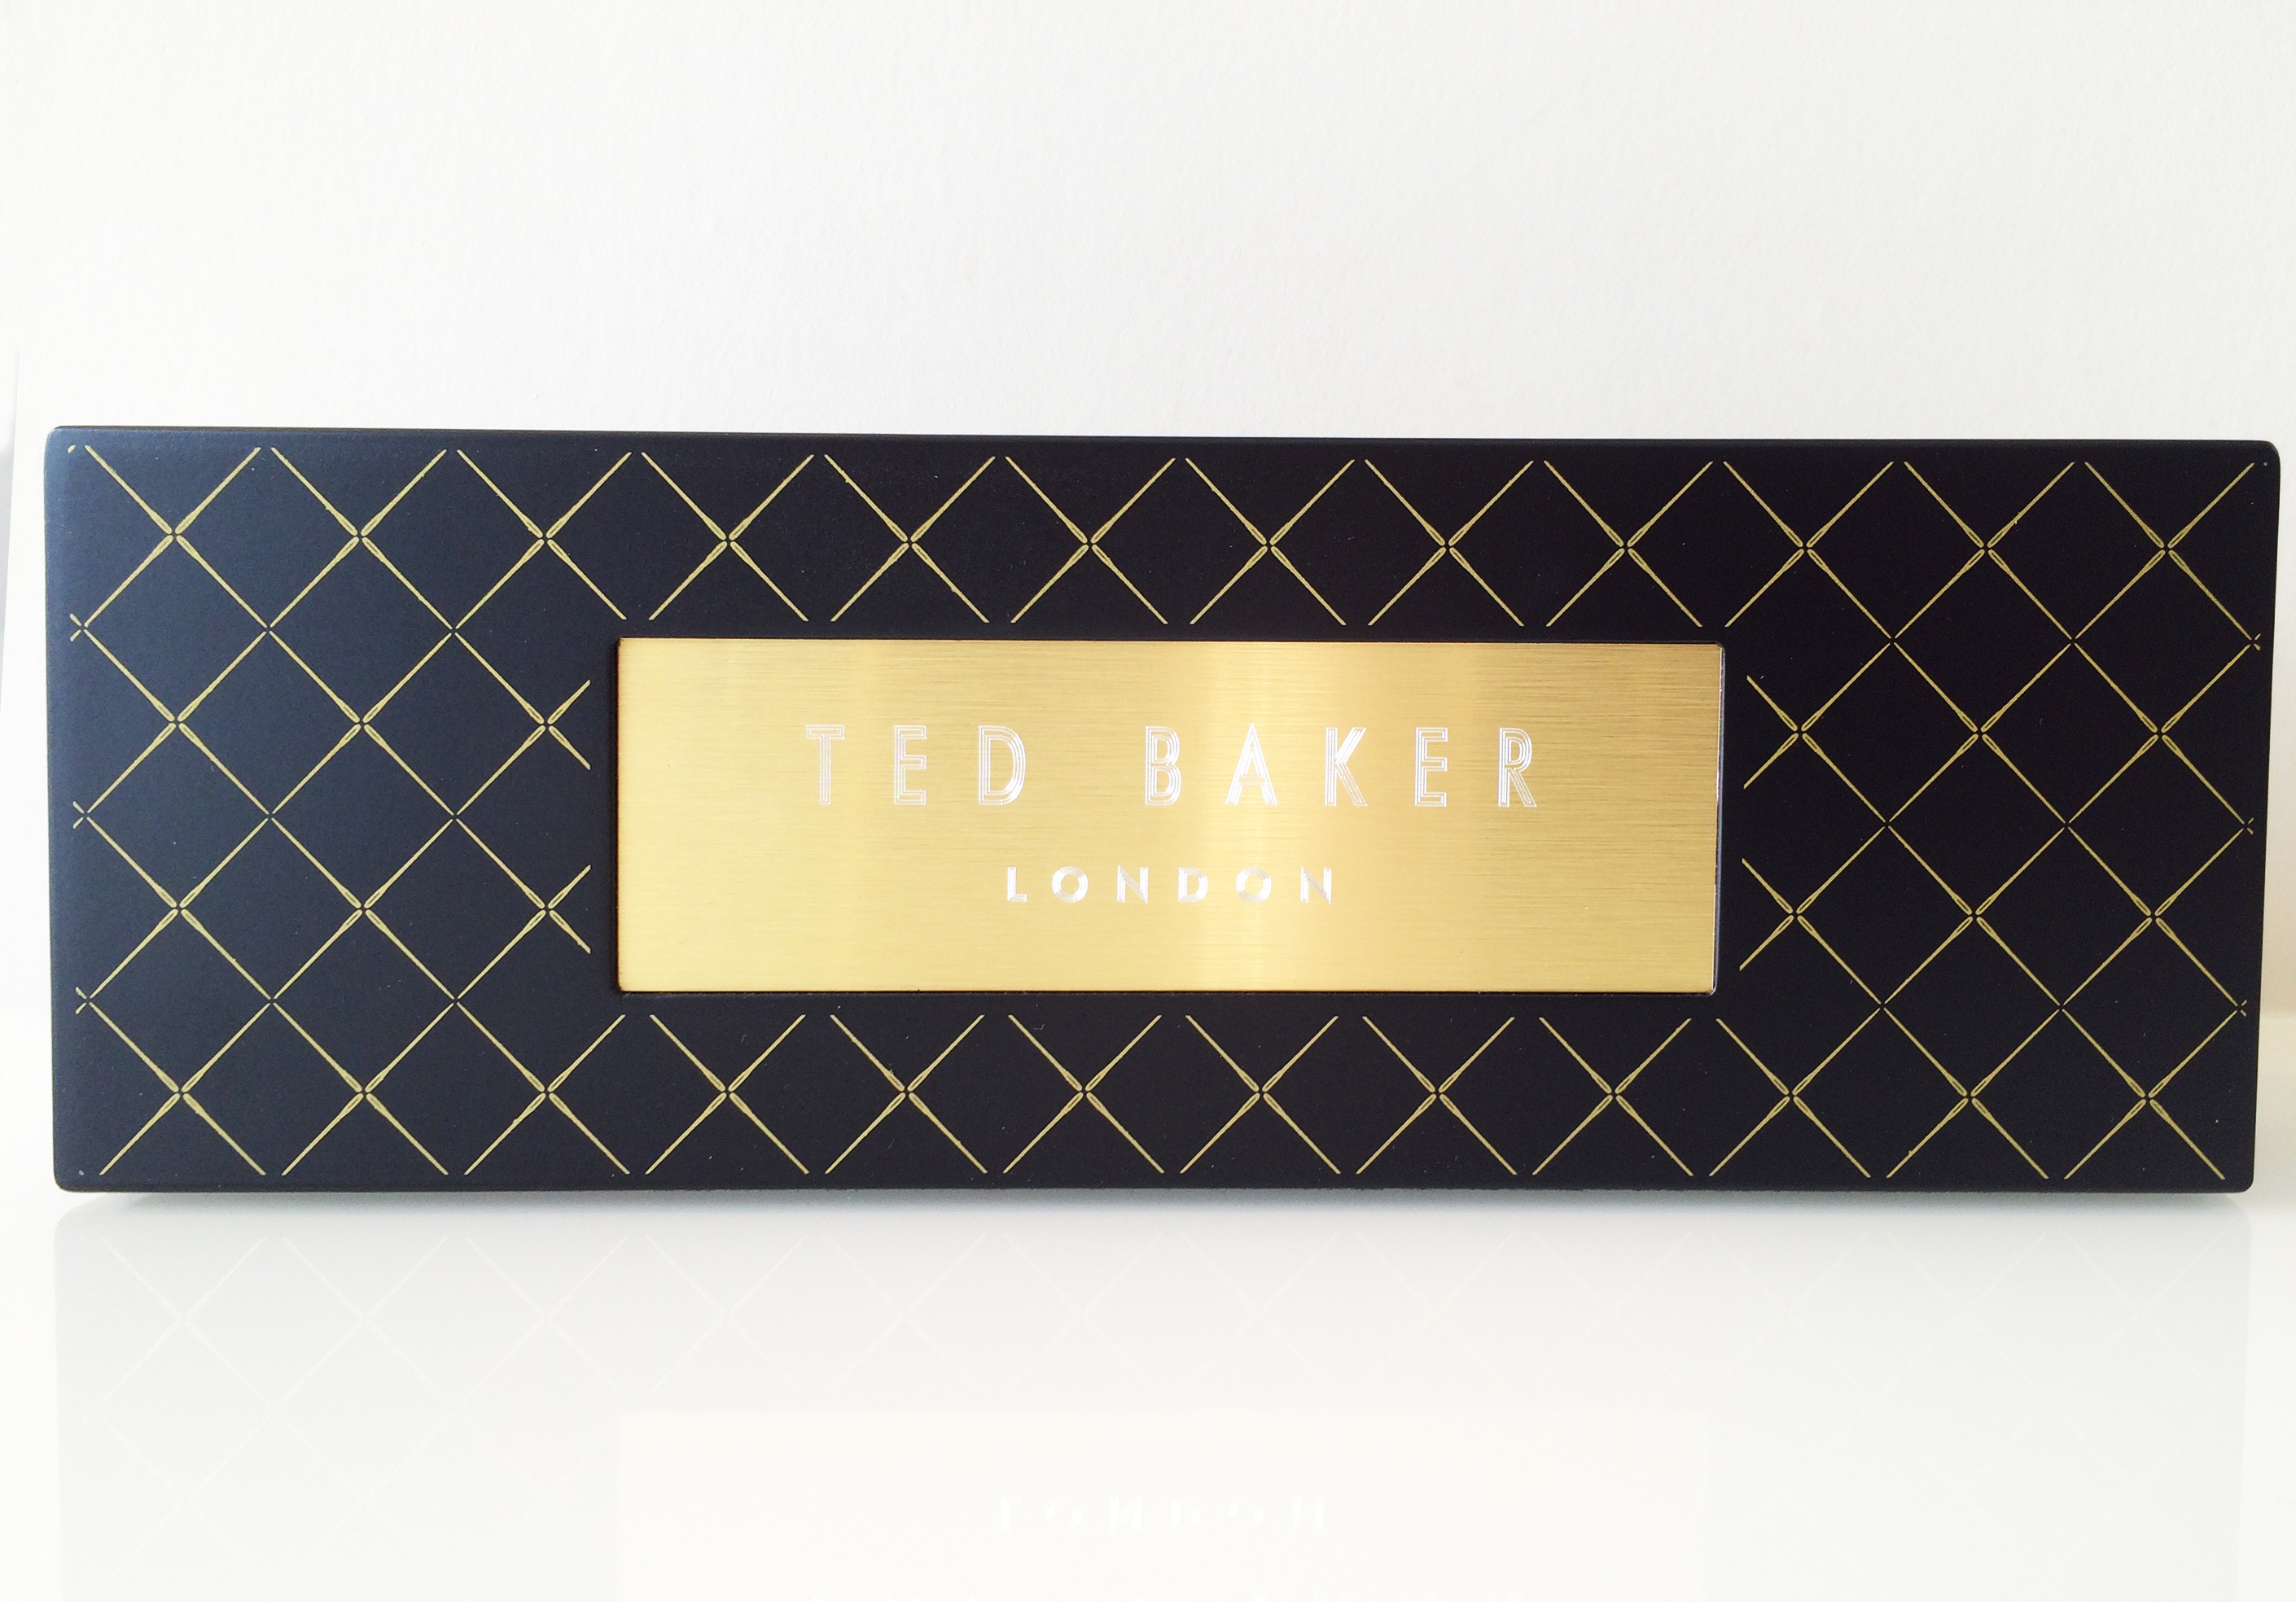 Ted Baker Branding Blocks